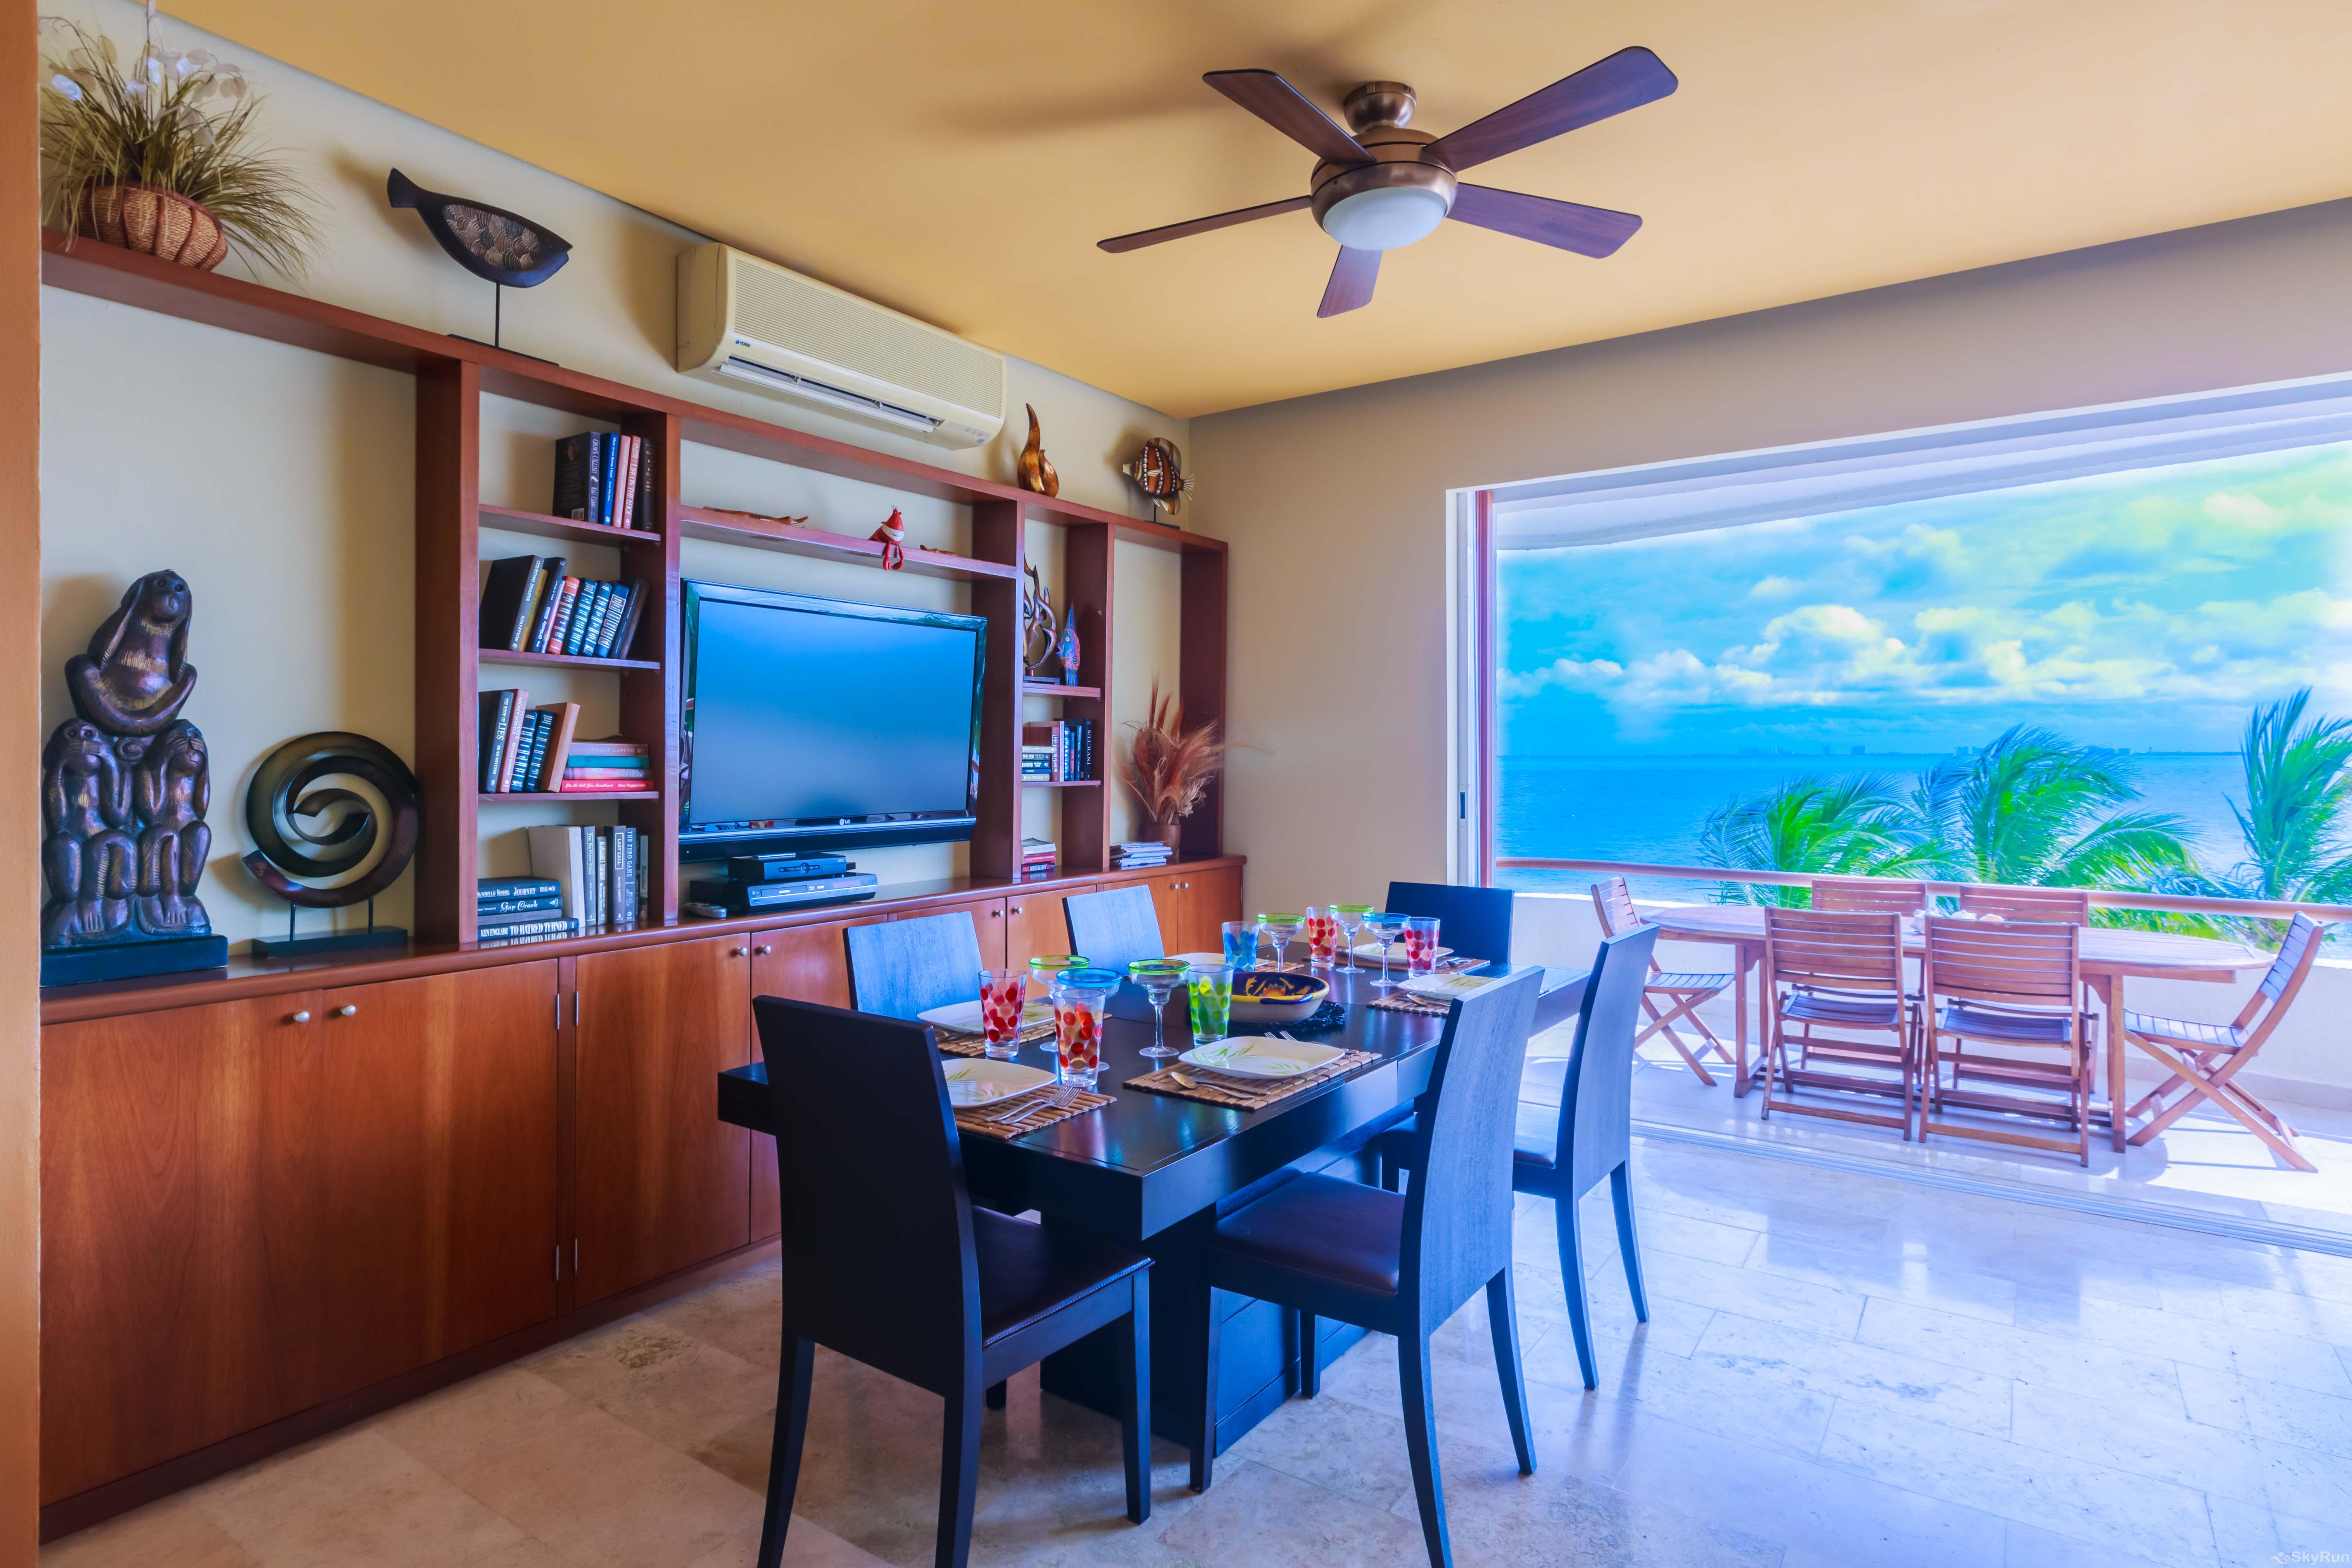 Coral Three Bedroom Oceanfront Residence Admire the beautiful and original art and décor that adorns the walls, shelves and tables at this corner unit